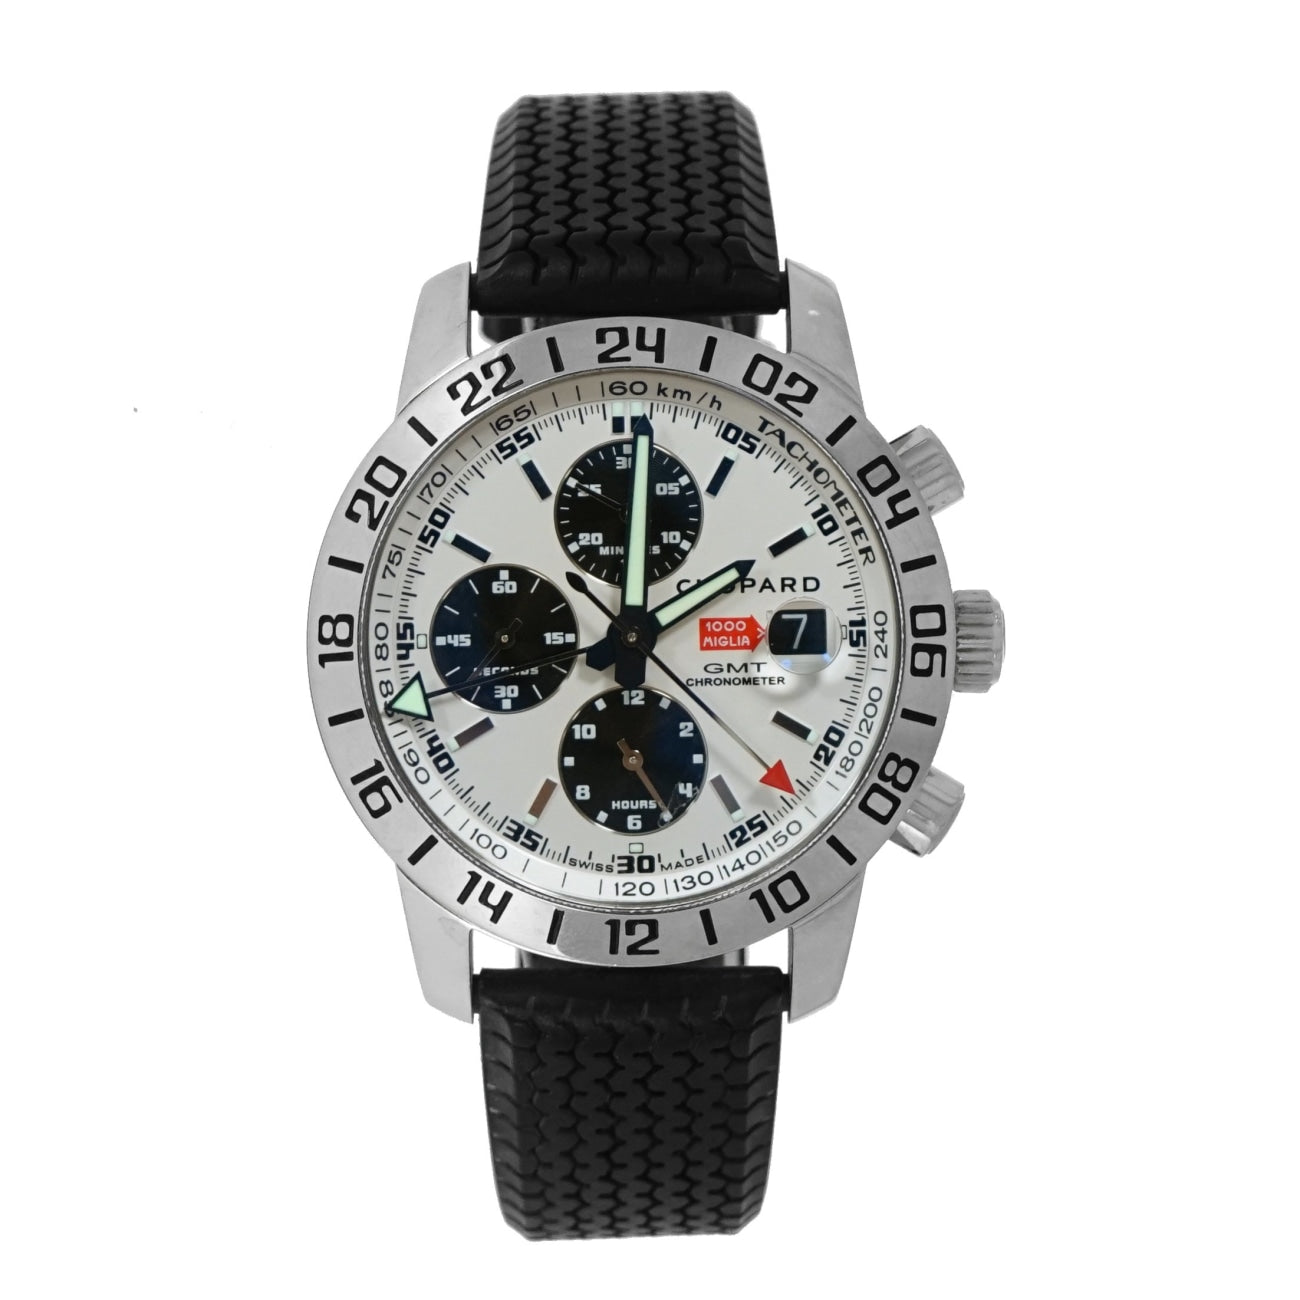 Pre-Owned Chopard Pre-Owned Watches - Mille Miglia GMT Chronograph Limited edition | Manfredi Jewels